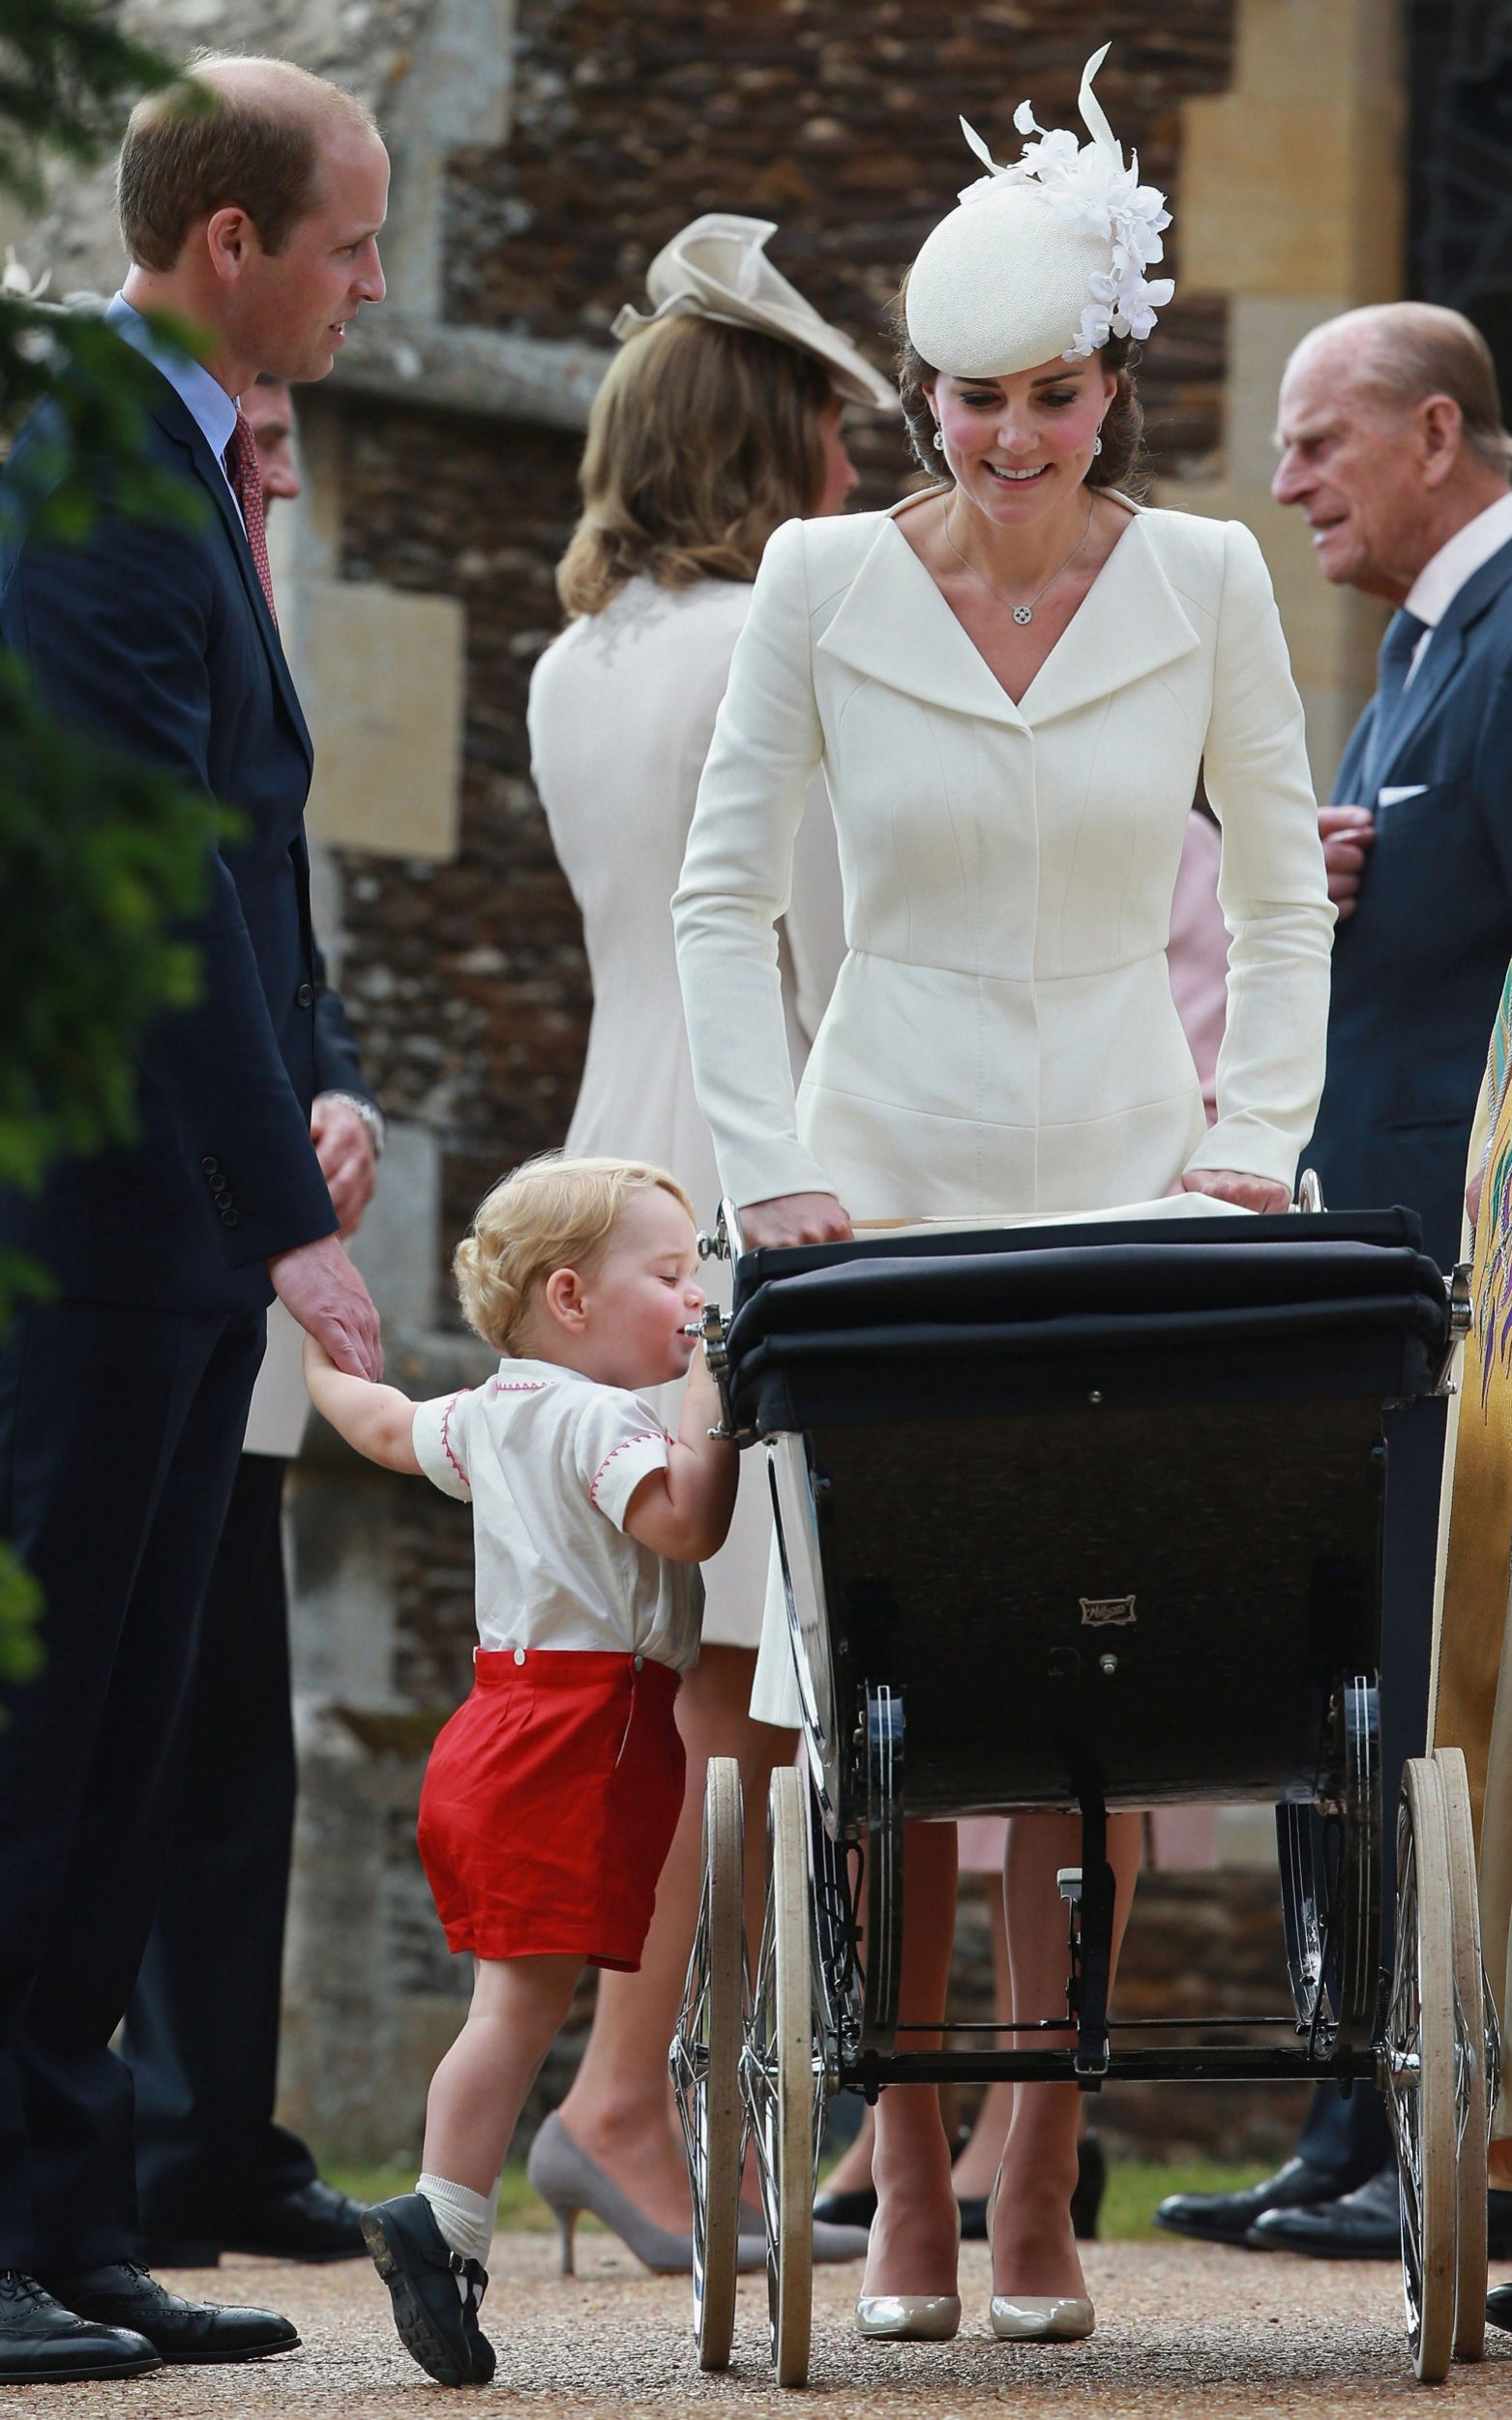 Prince George peeking into his sister's vintage Millson Prince pram at her christening